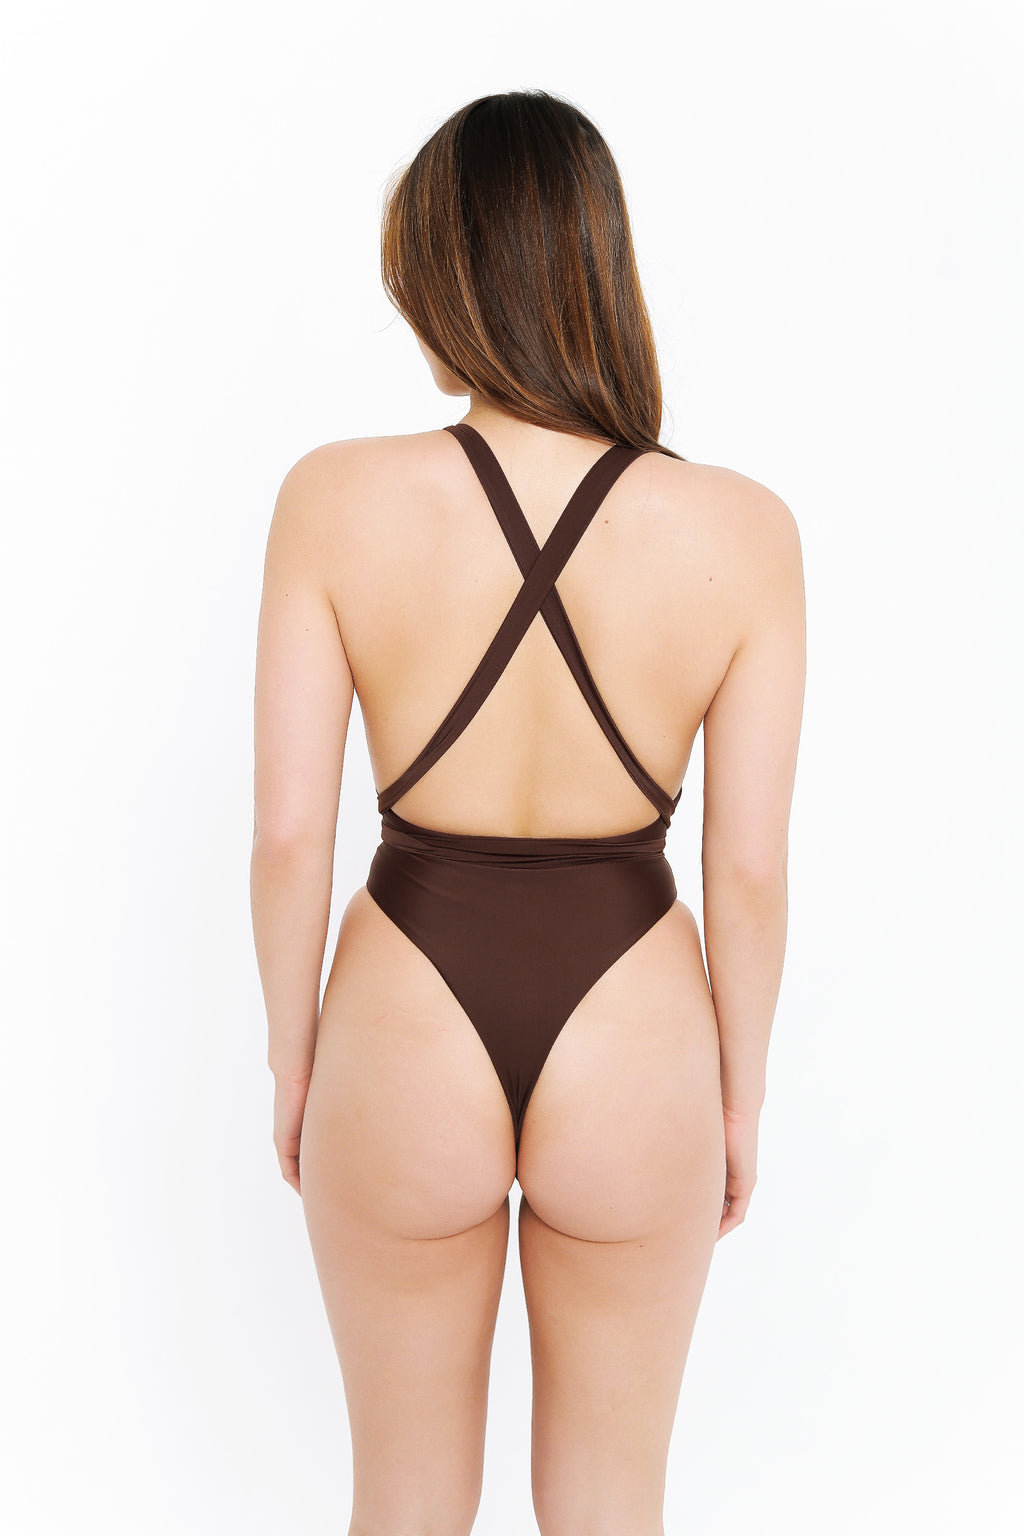 SARAH ONE PIECE - CHOCOLATE